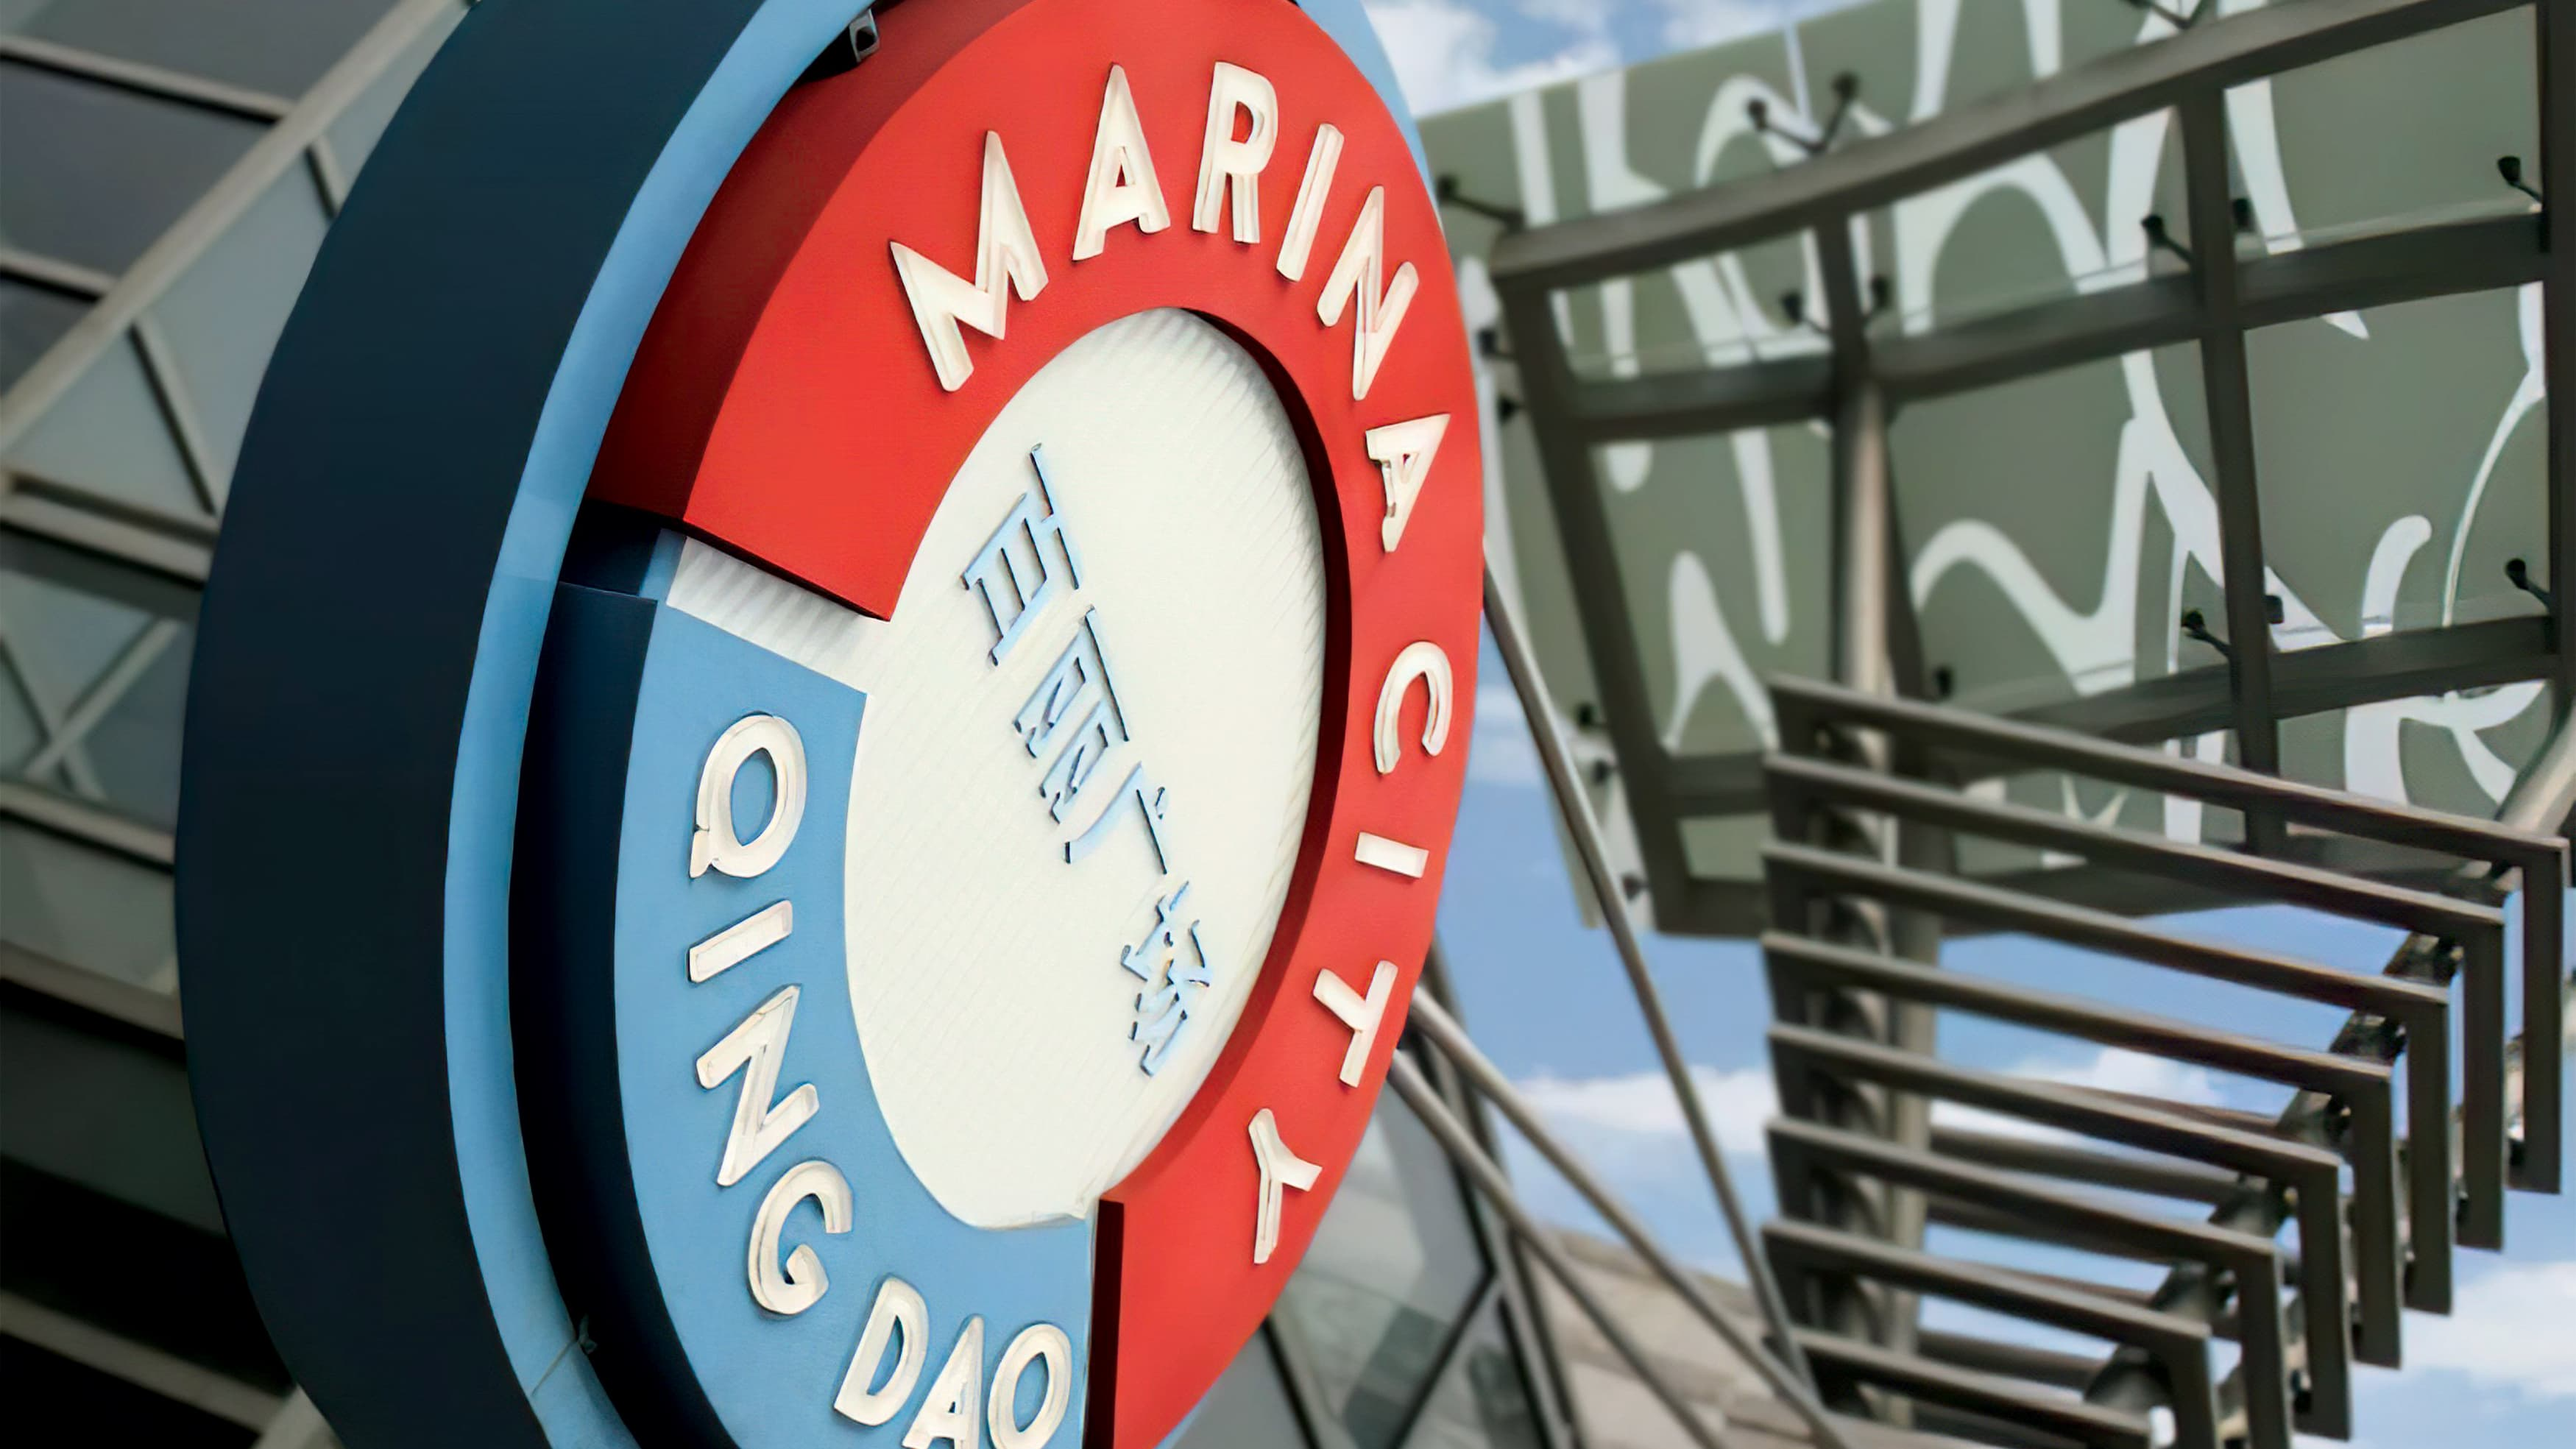 Marina City project identity on sign fashioned to look like buoy